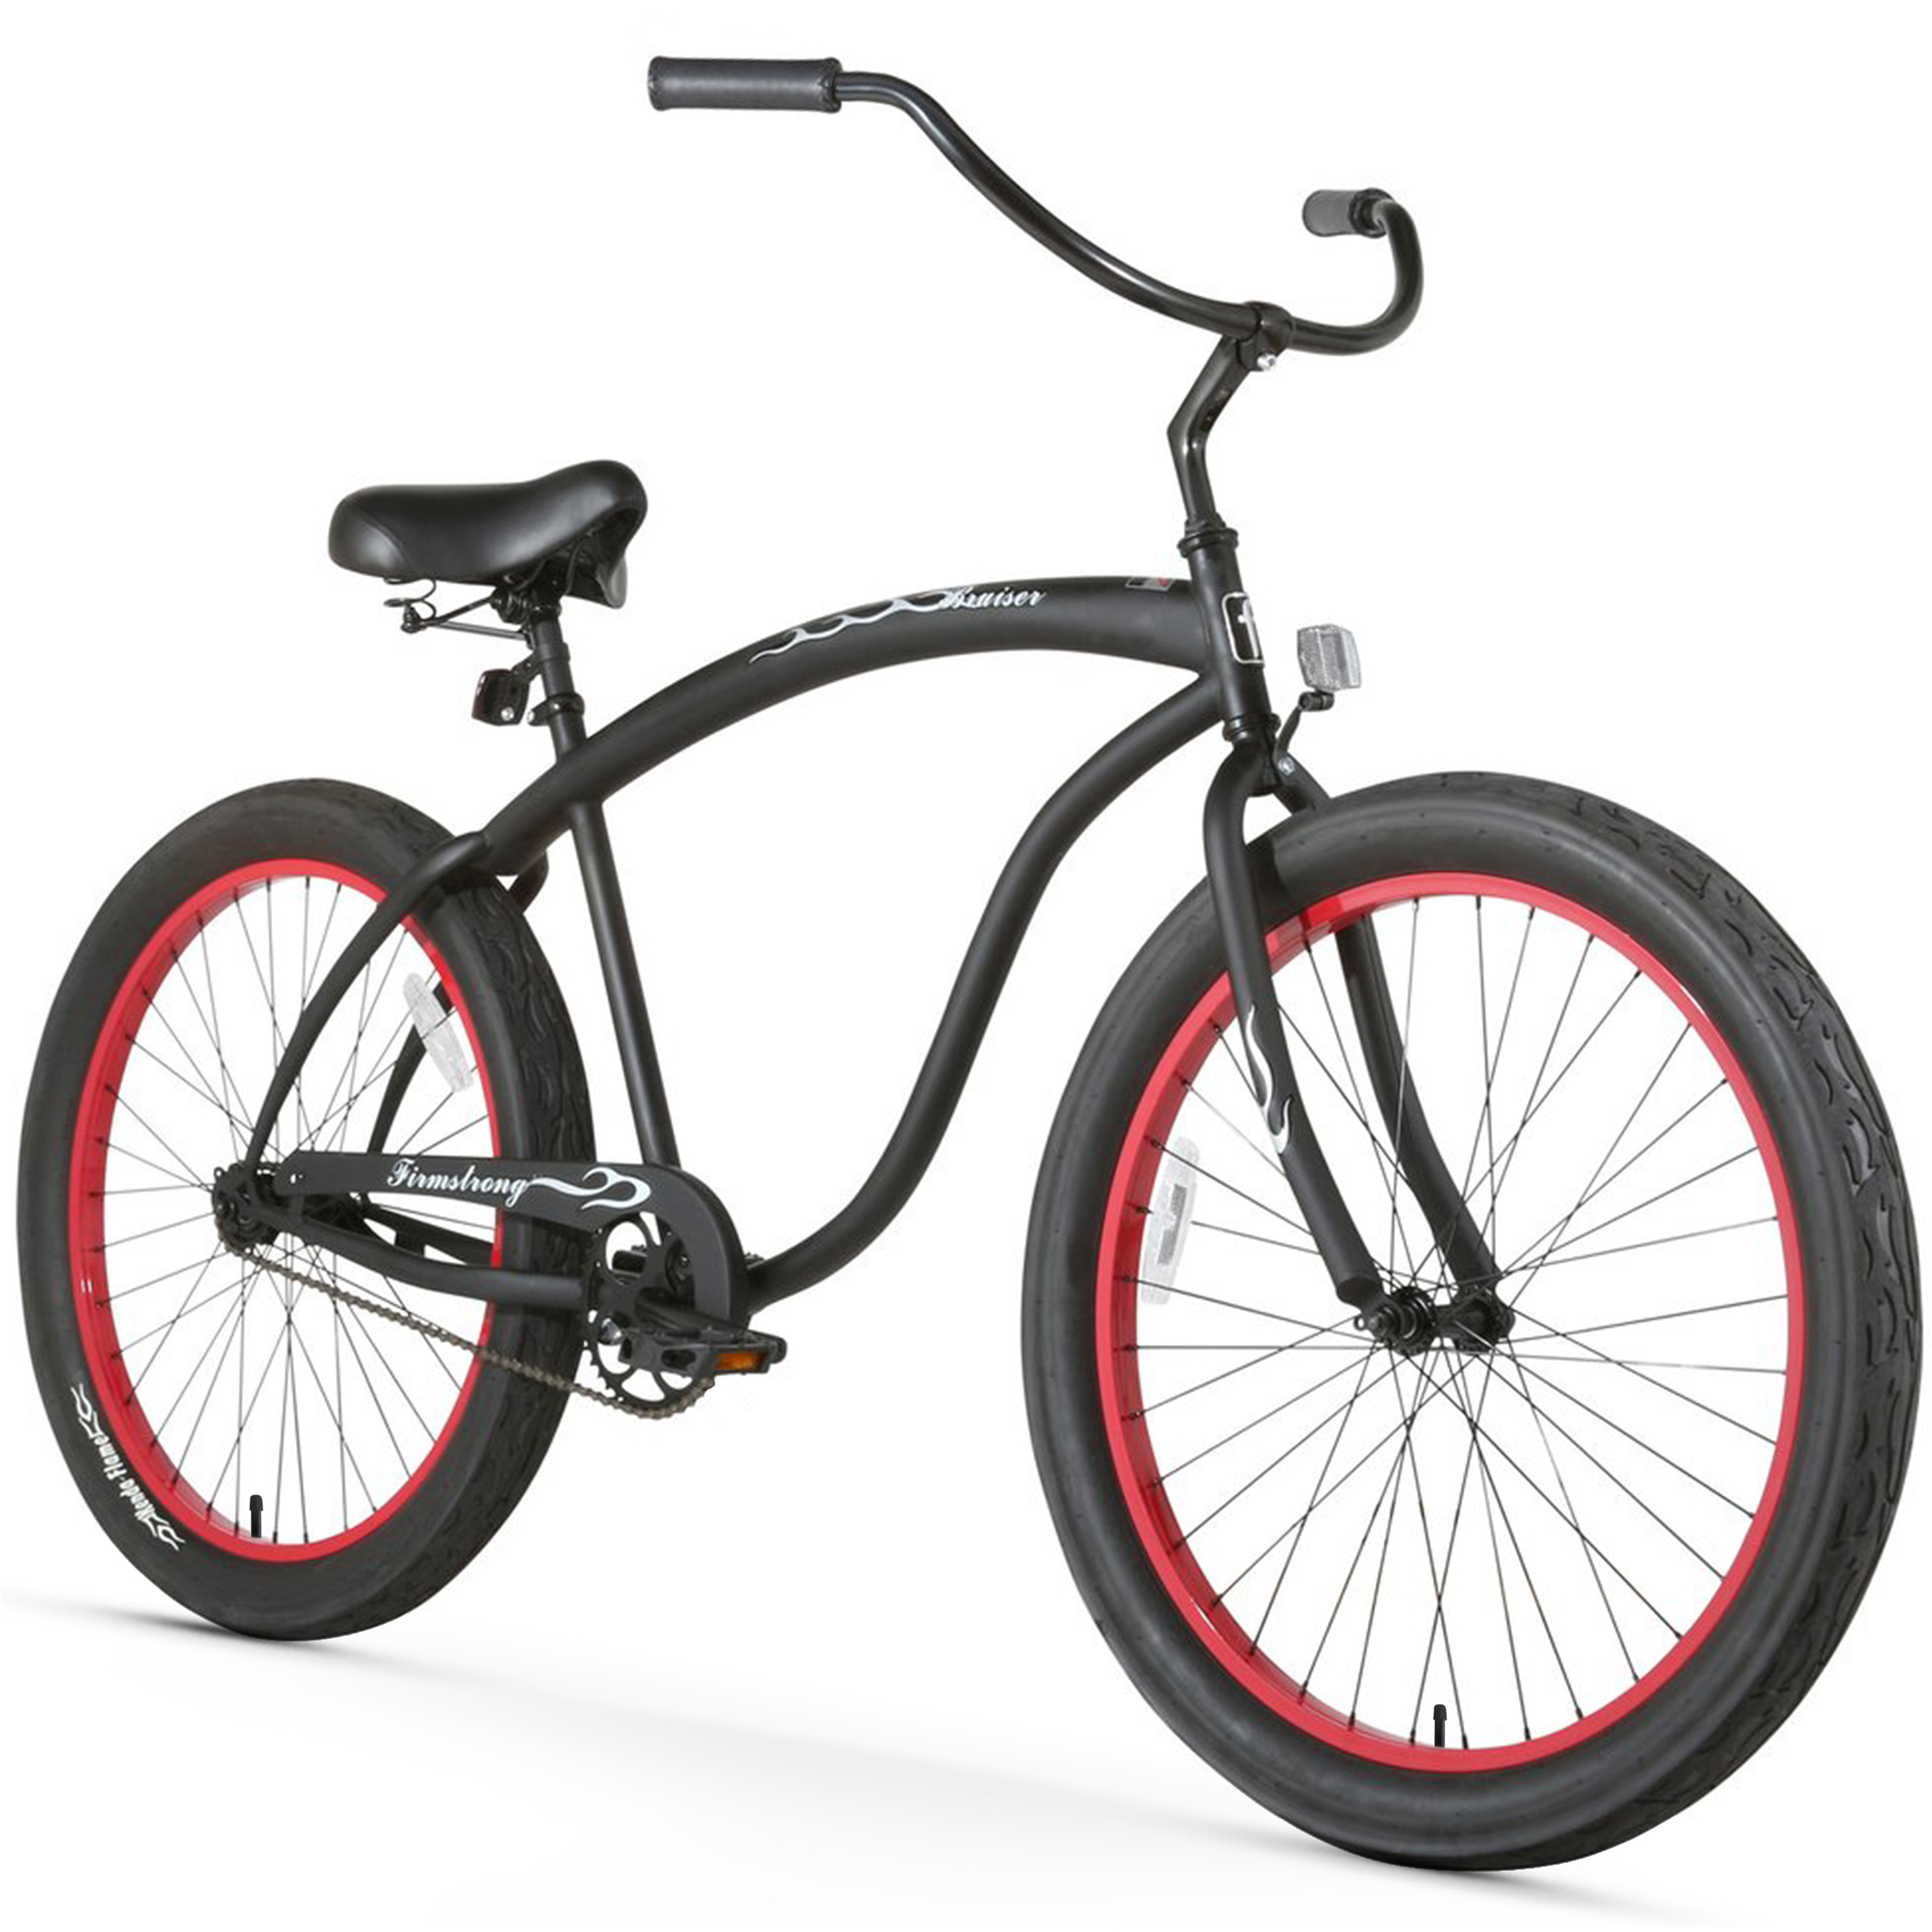 "Firmstrong 26"" Bruiser 3.0 Beach Cruiser Bicycle, 1 Speed"